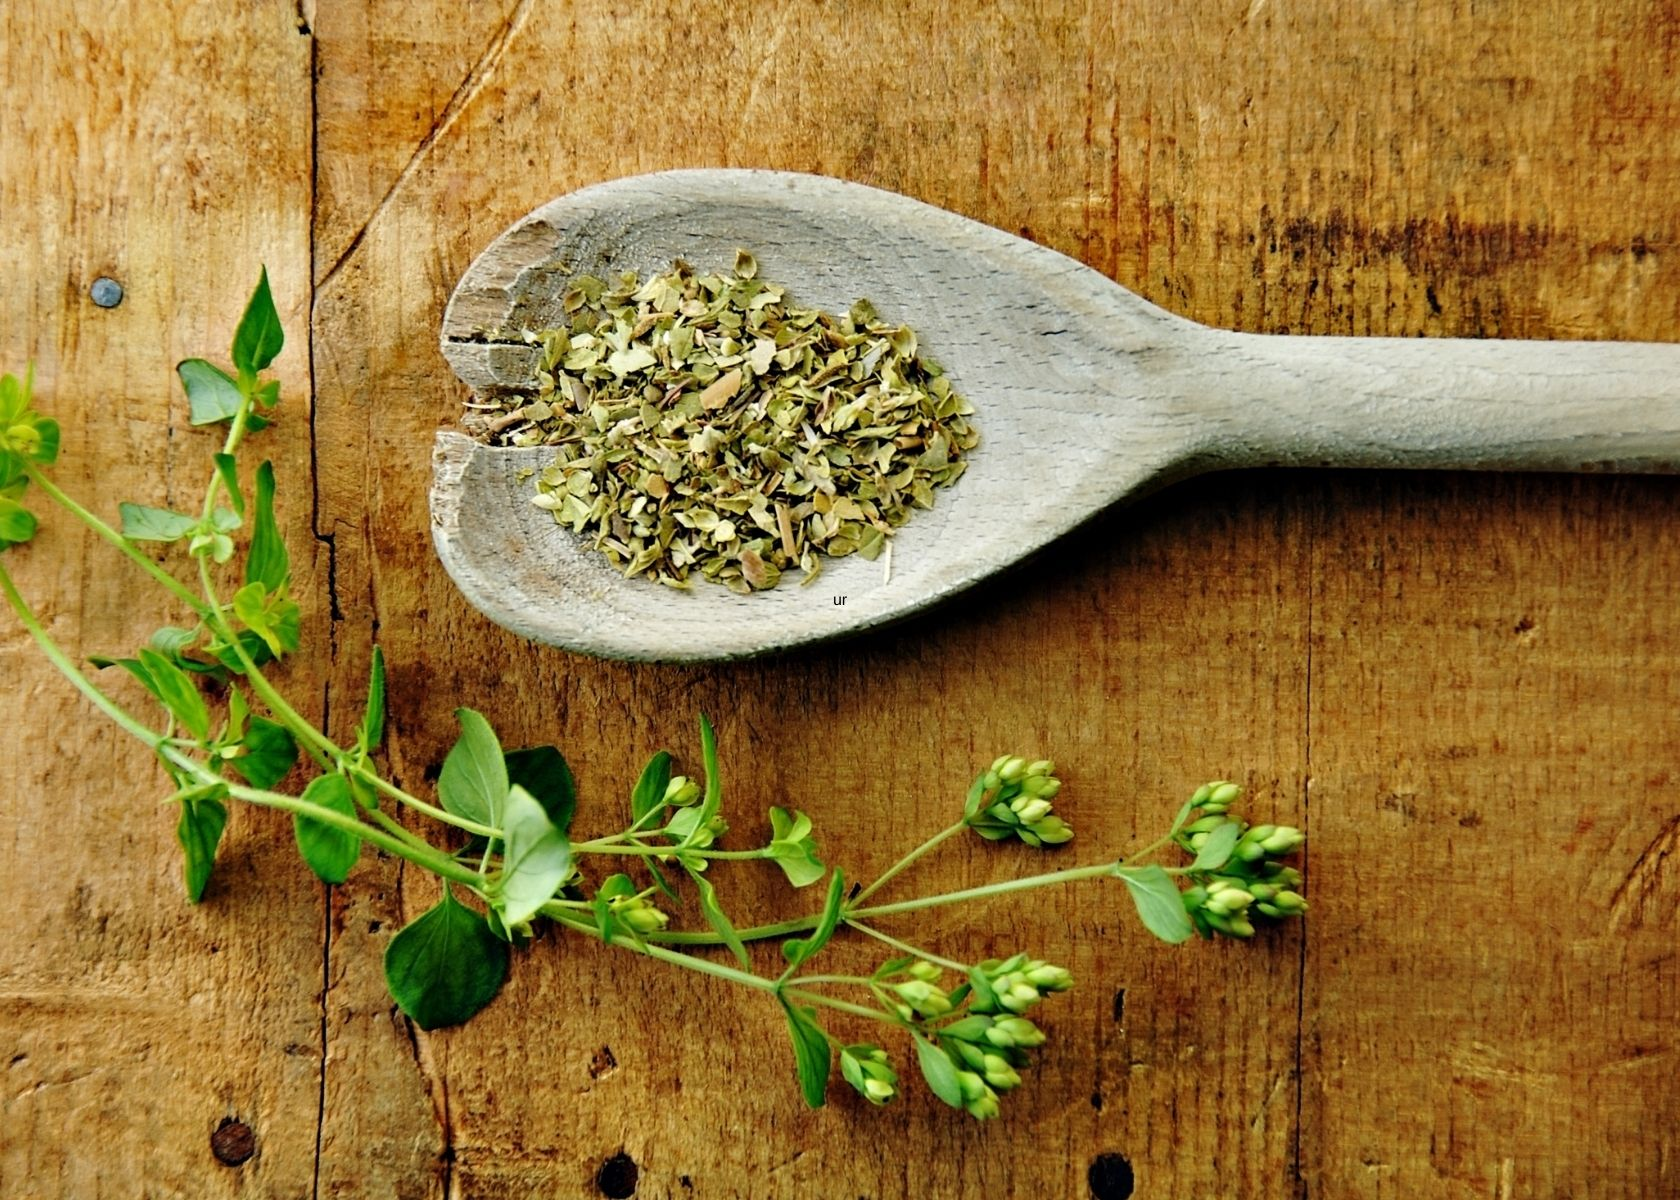 Dried oregano in wooden spoon next to fresh leaves.